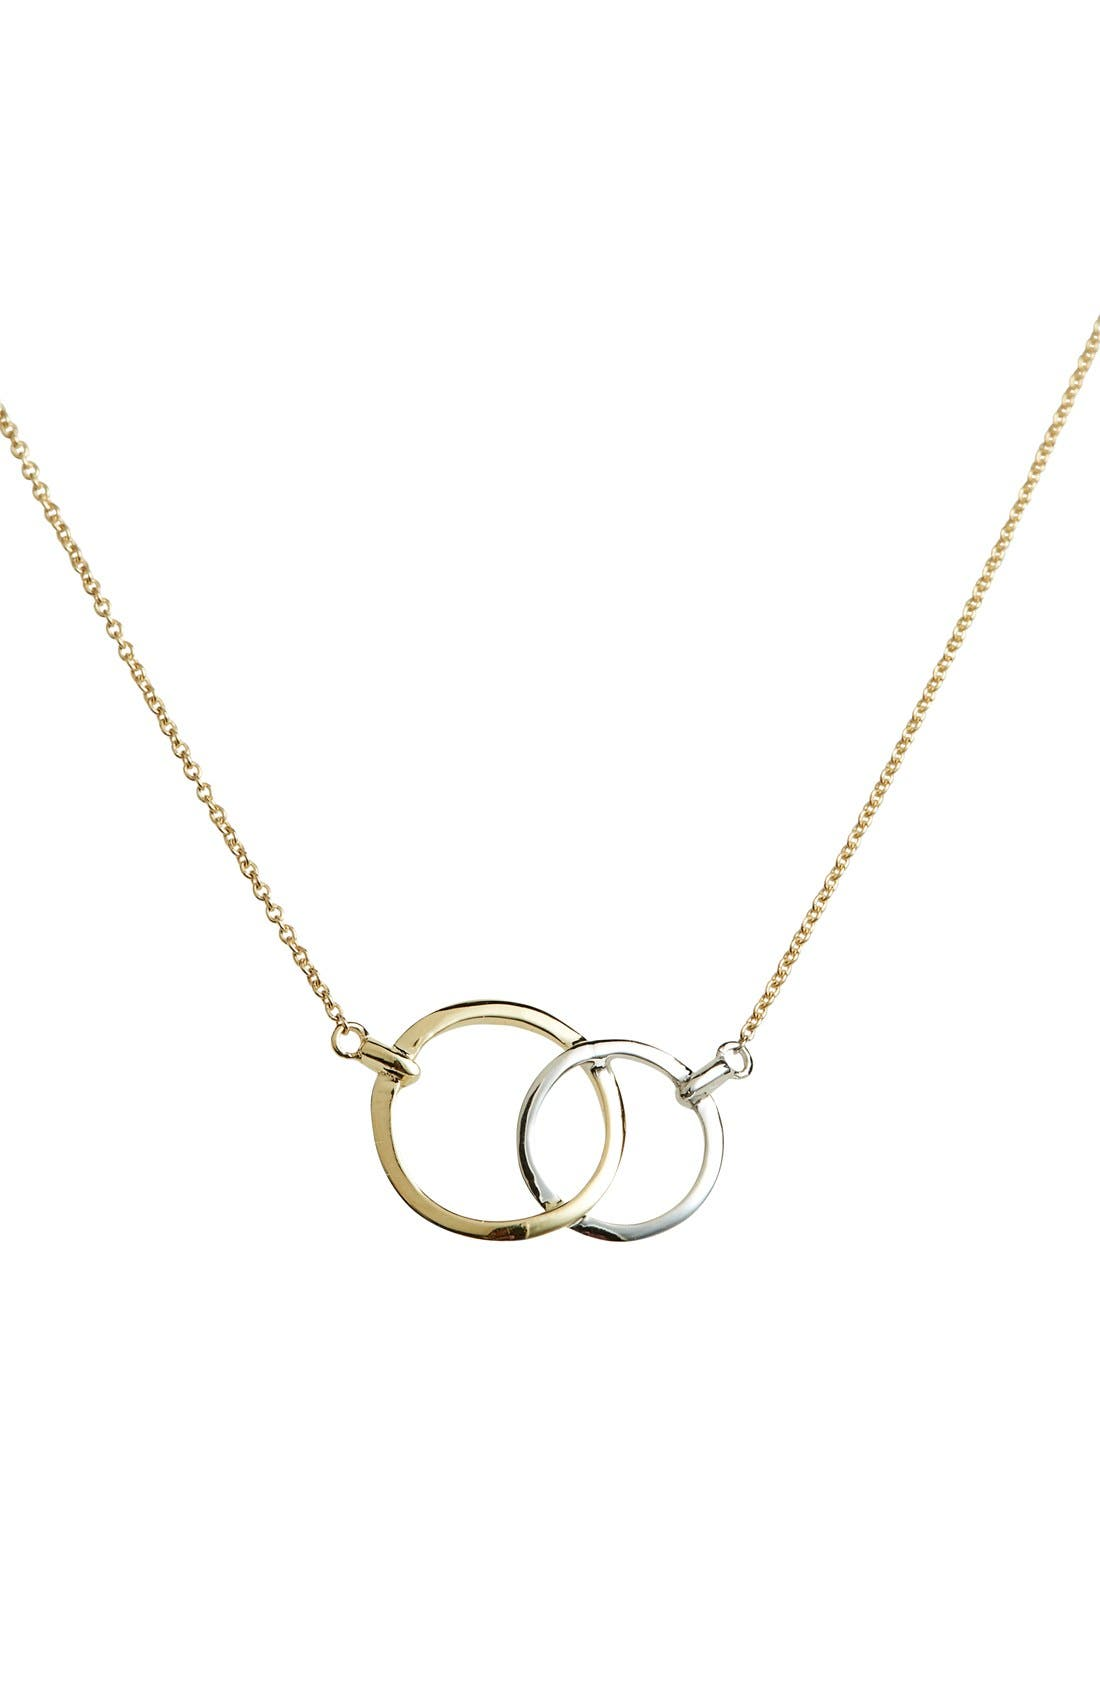 Double Circle Pendant Necklace,                             Main thumbnail 1, color,